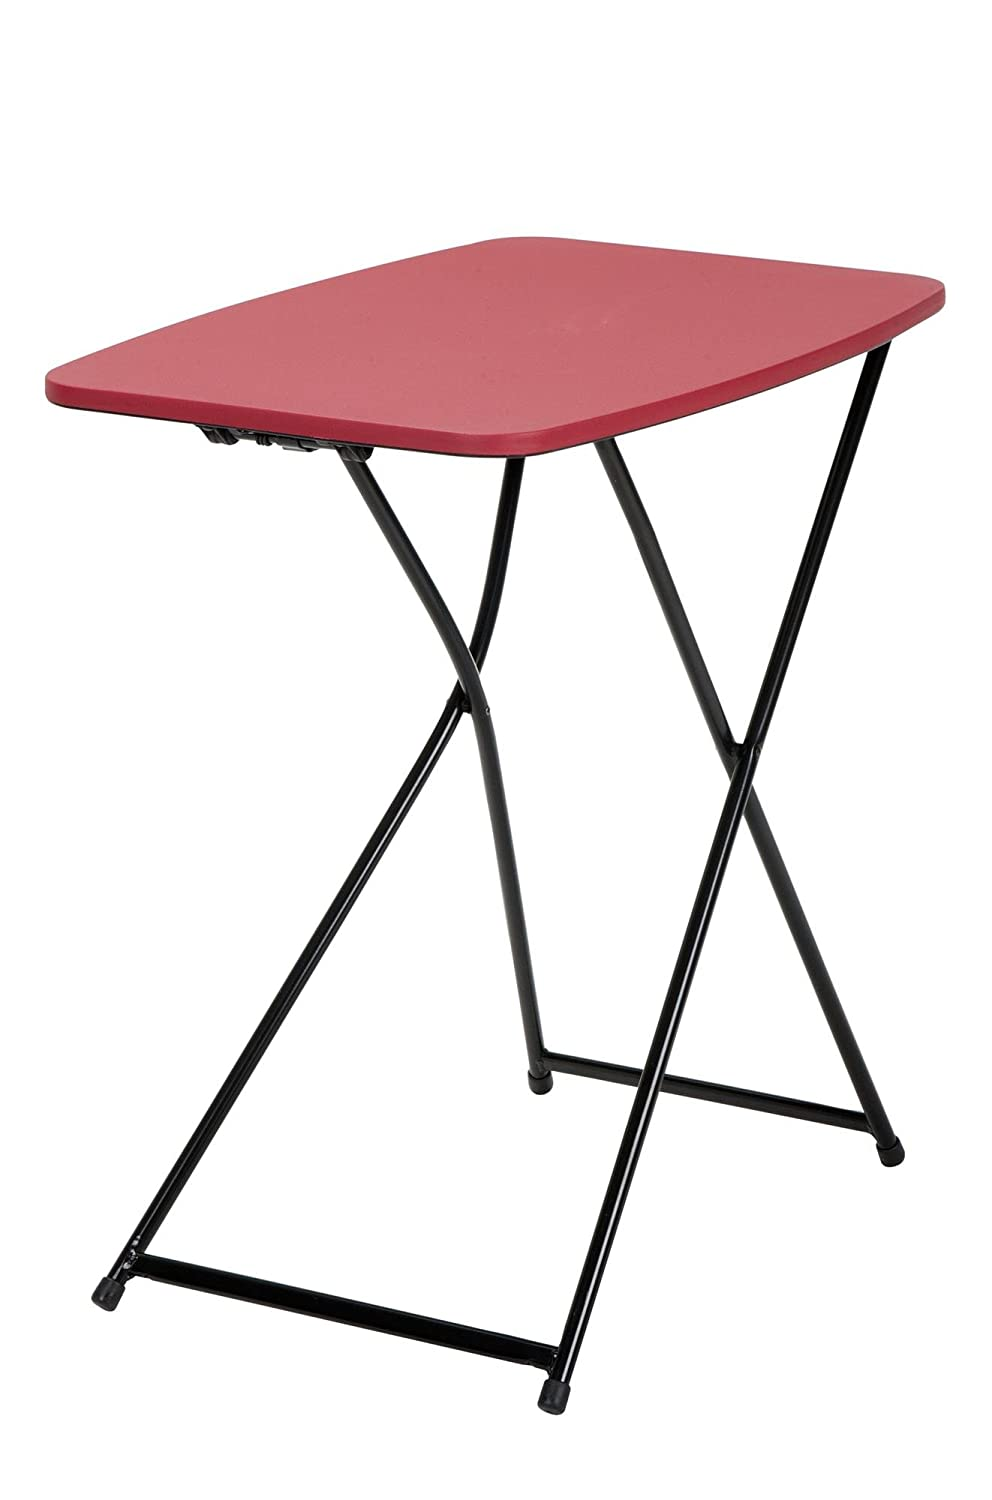 COSCO 18 x 26 Indoor Outdoor Adjustable Height Personal Folding Tailgate Table, Red, 2-pack